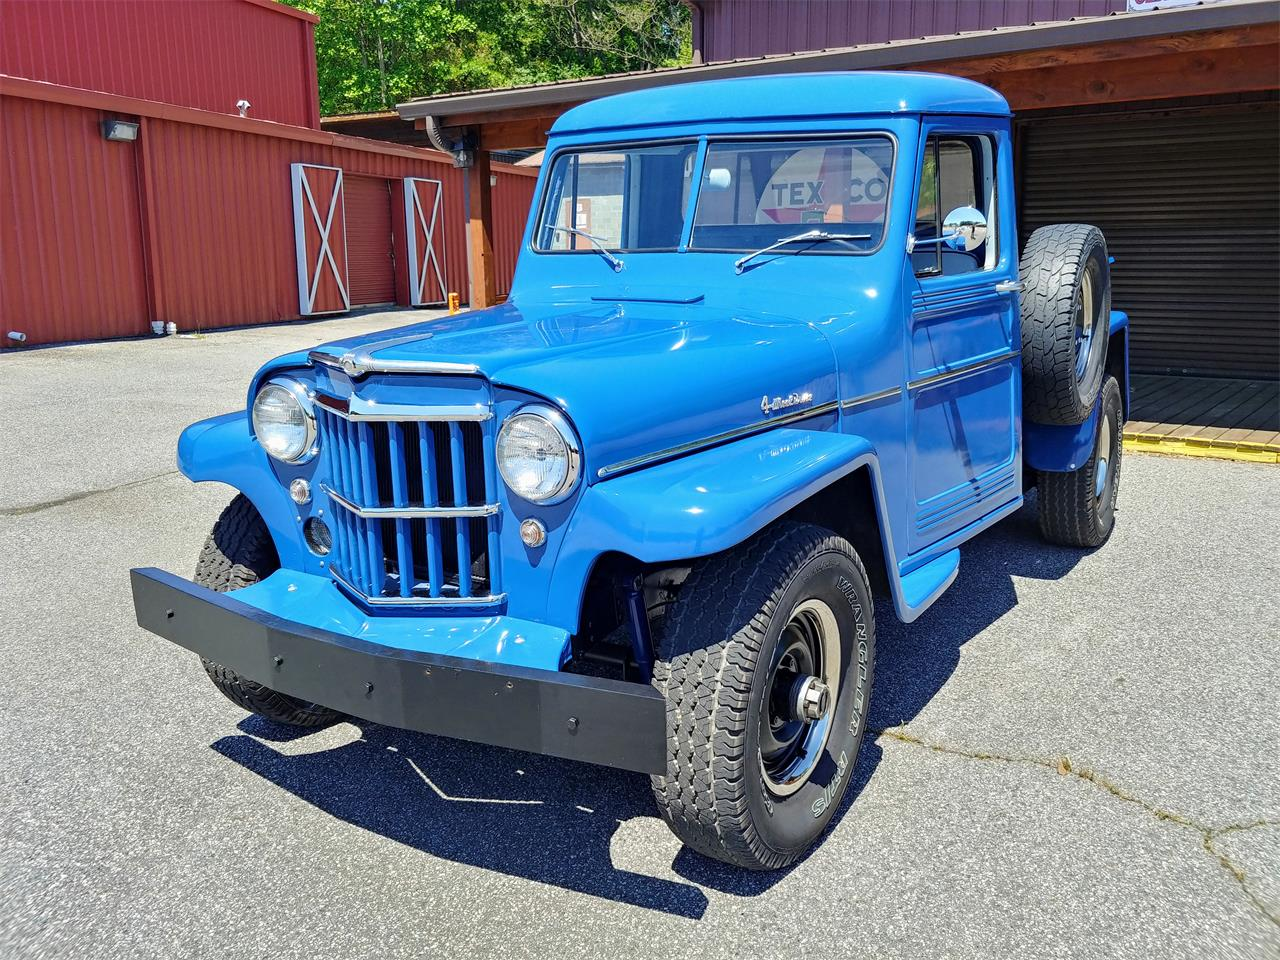 Willys Jeep Truck For Sale >> For Sale 1959 Willys Jeep In Cumming Georgia